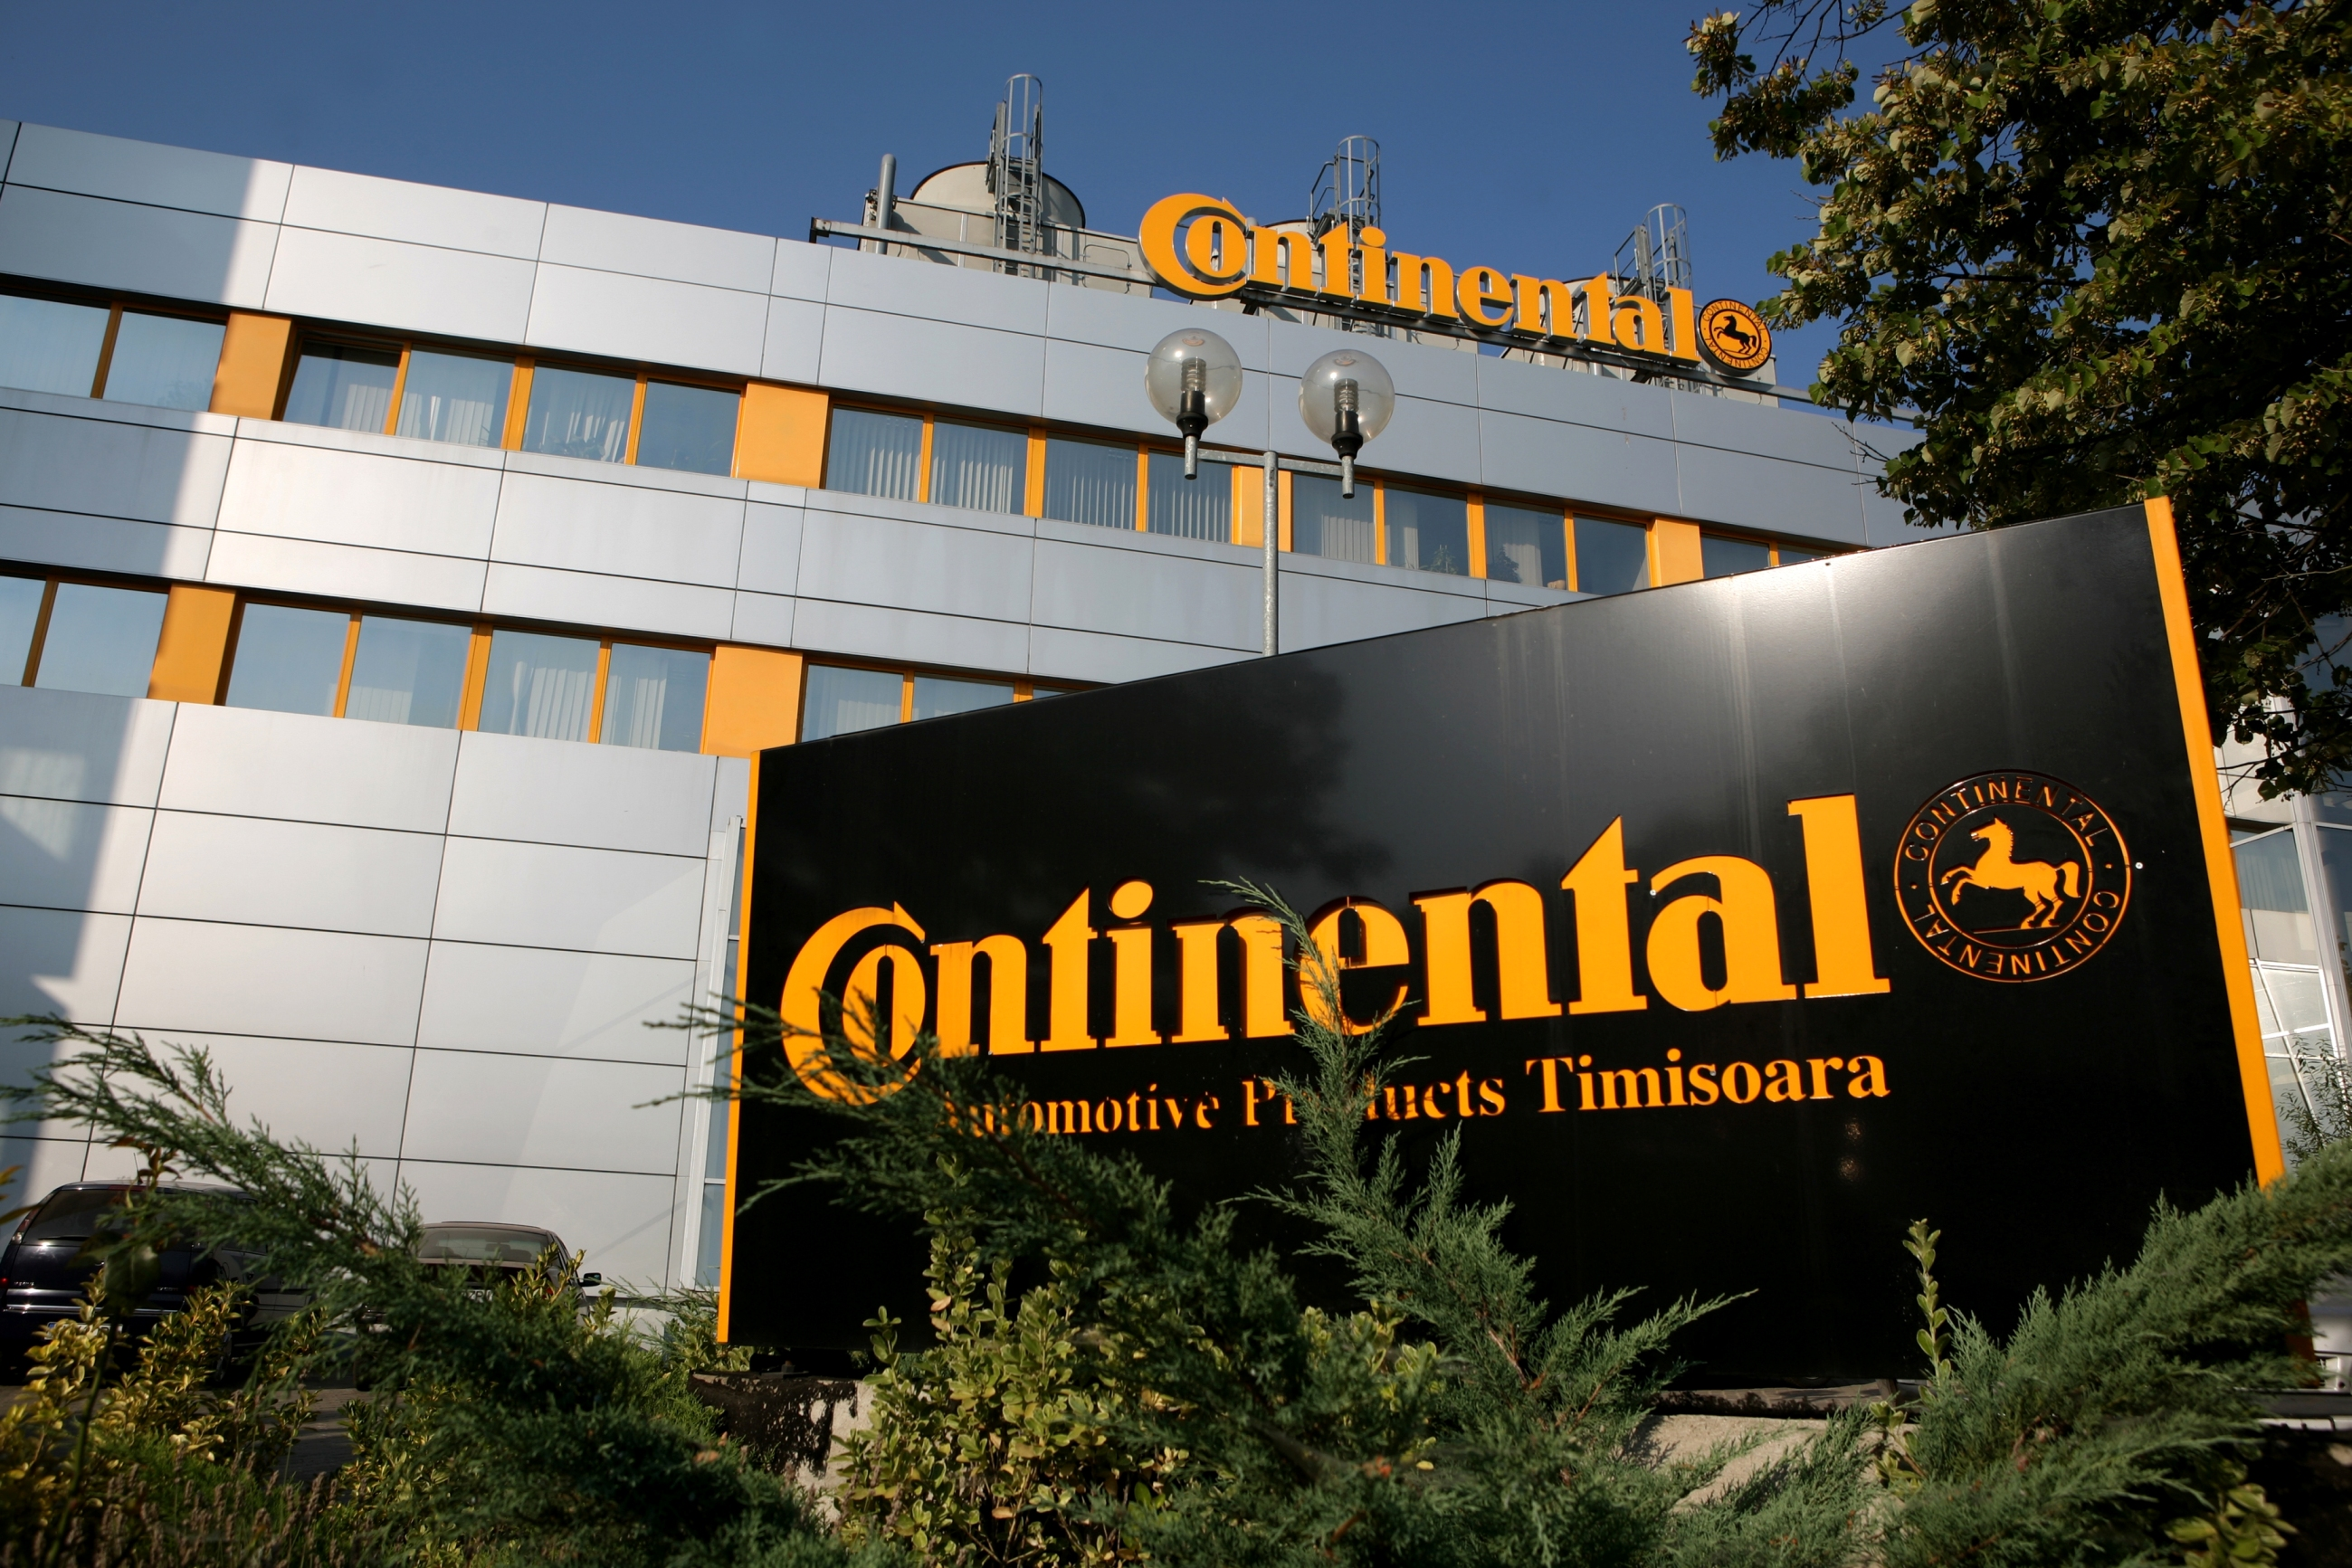 Join Continental Team